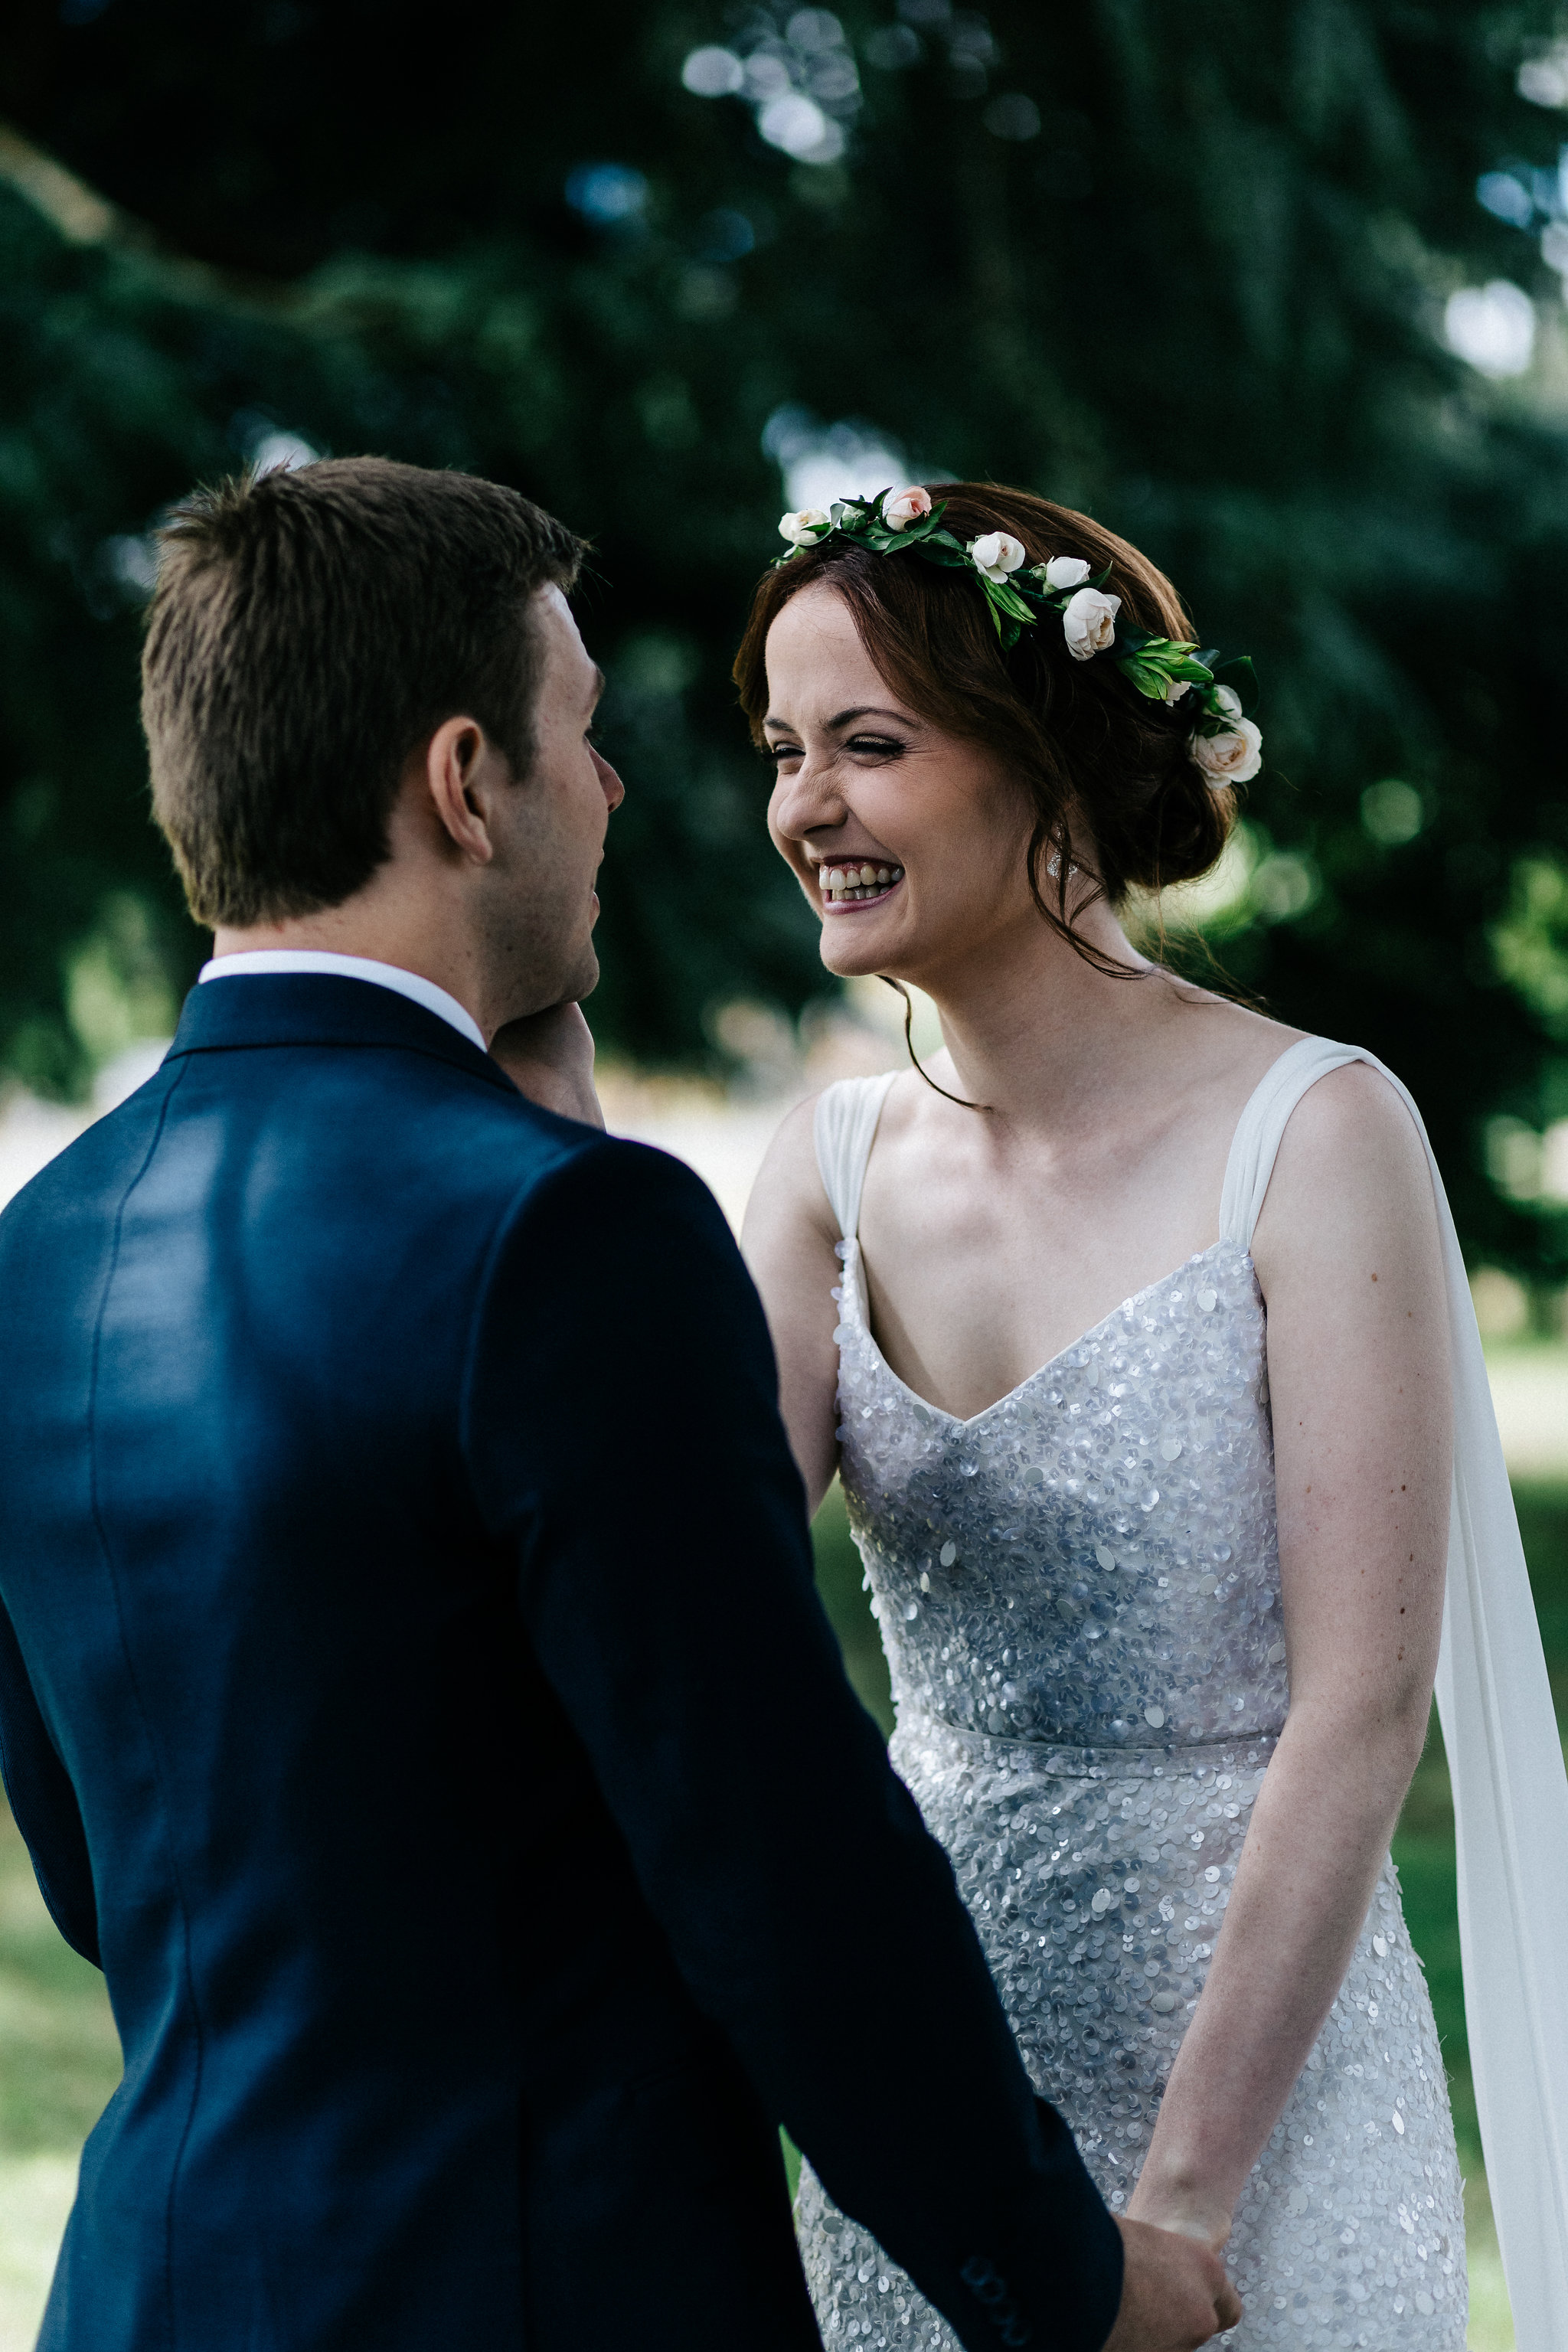 Sarah & Lucas' DIY wedding